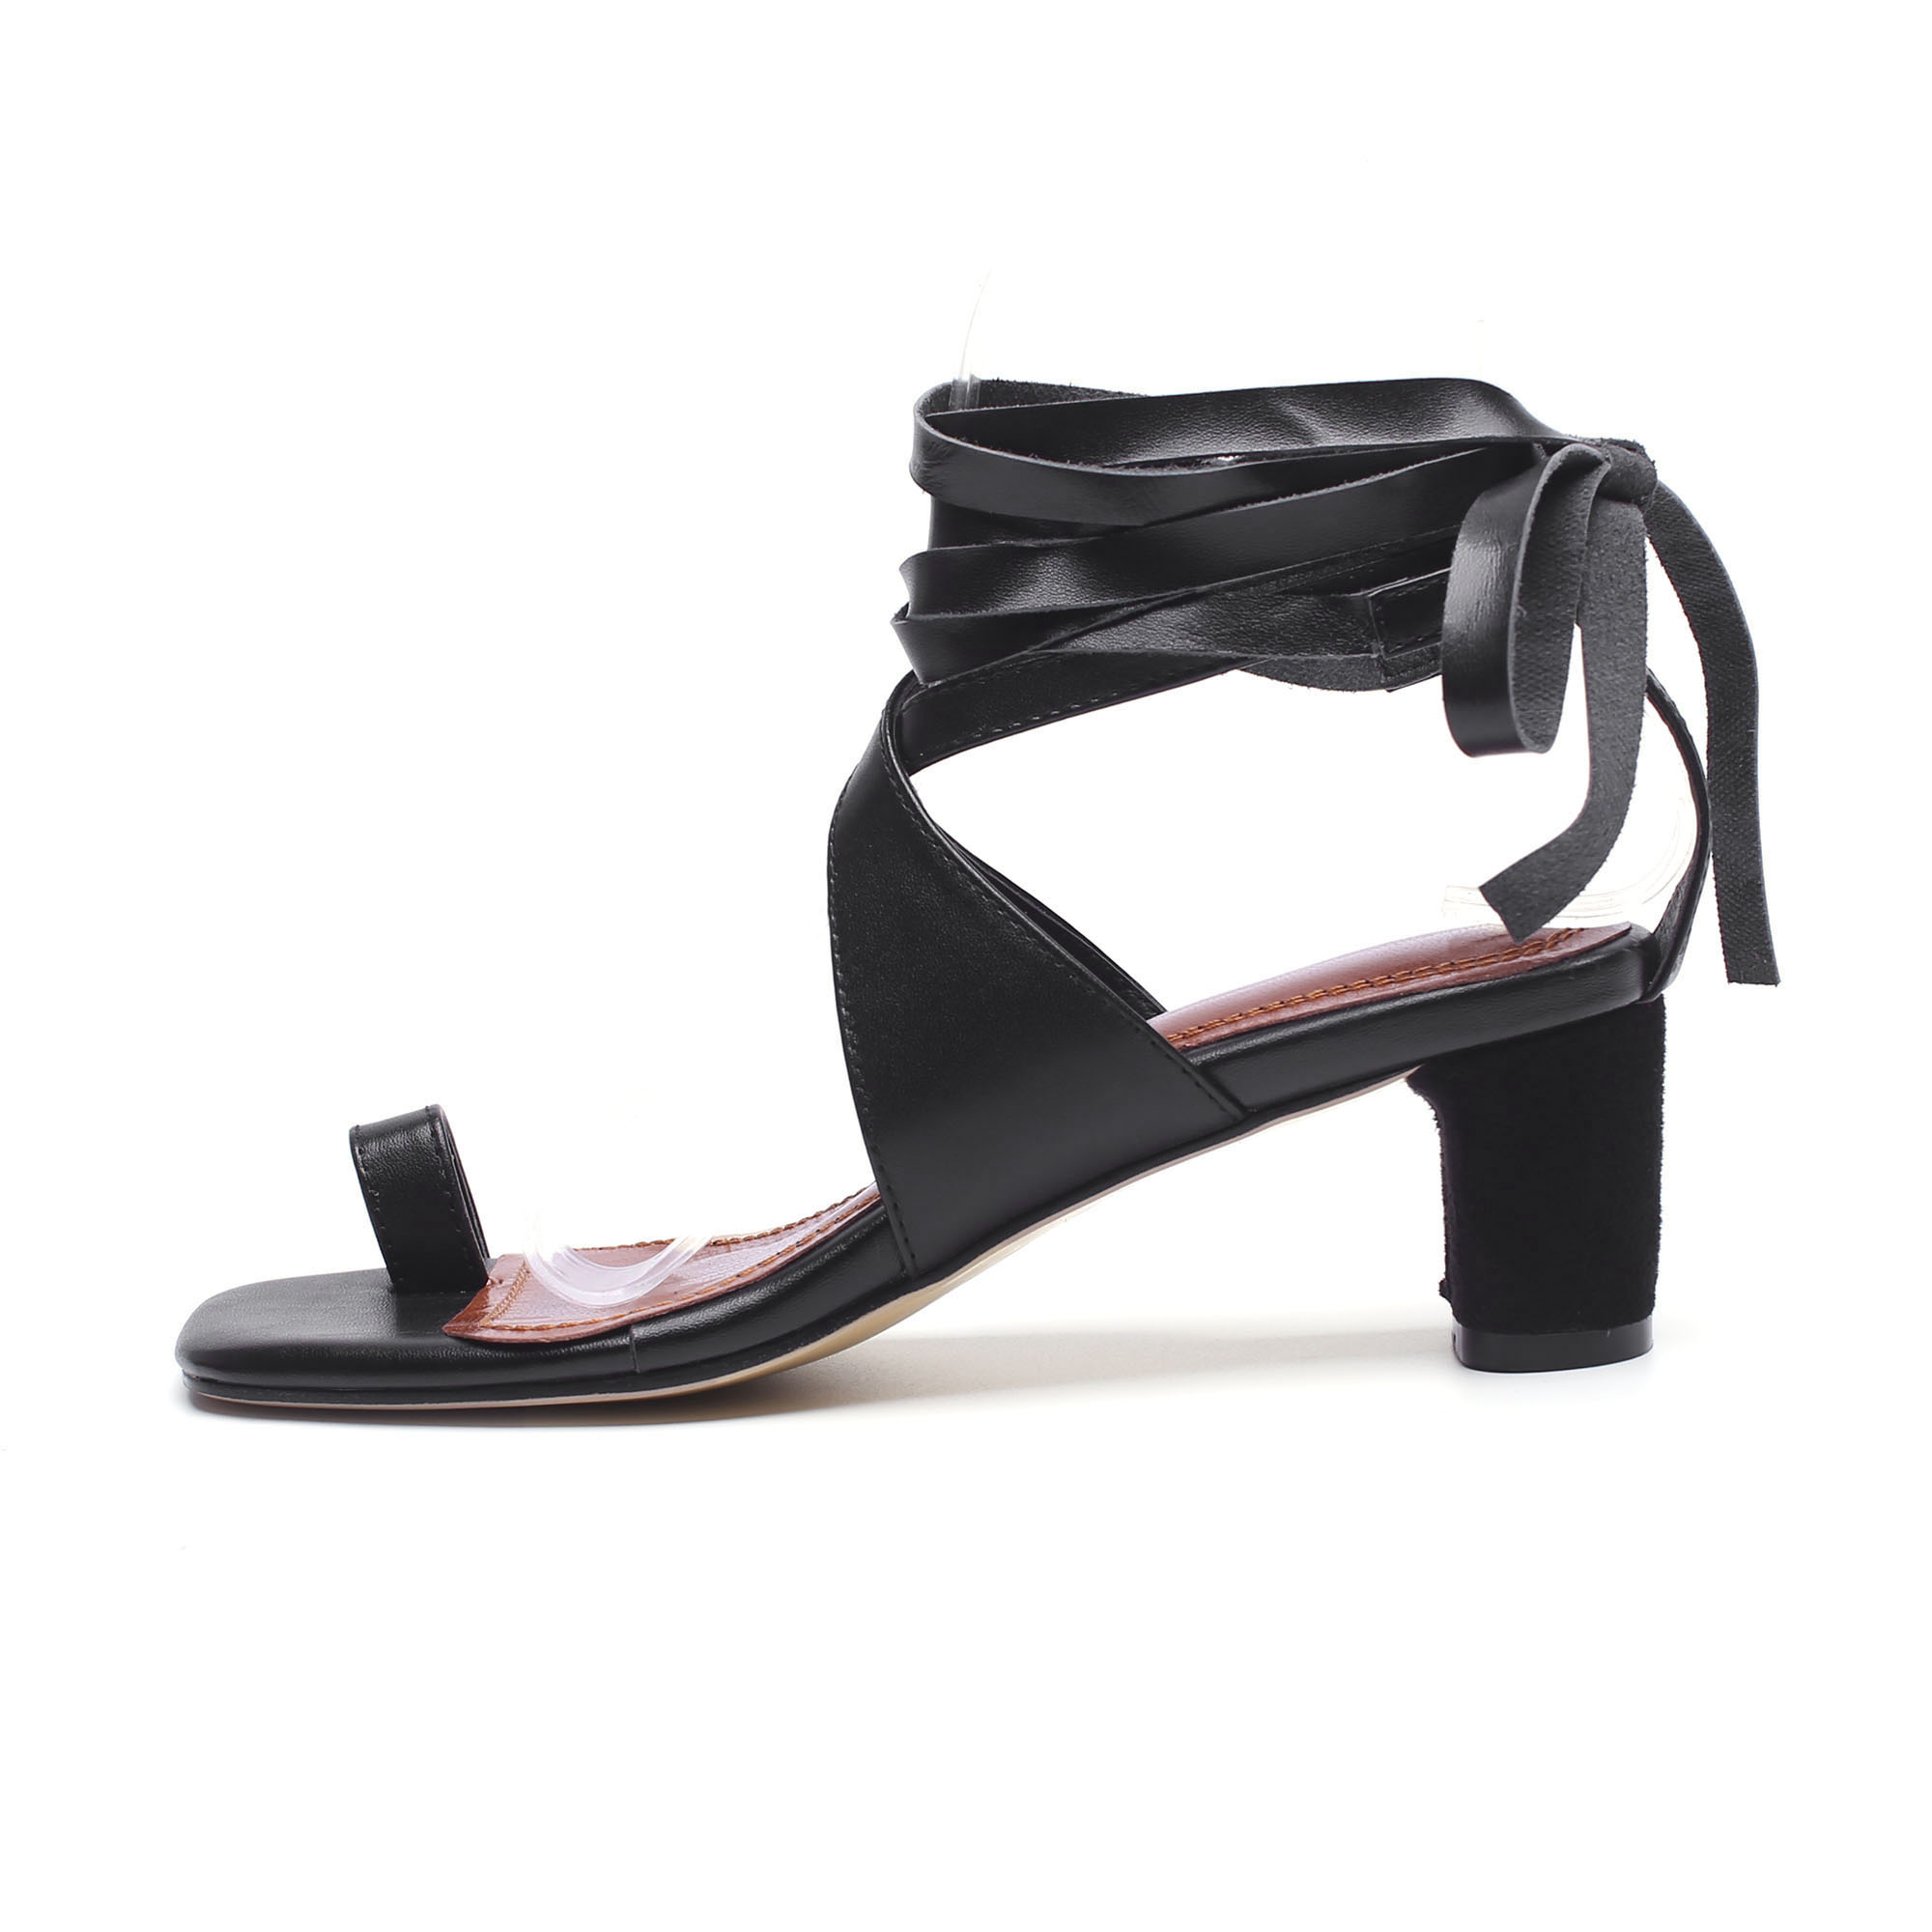 b67859de1159 US  60 - Arden Furtado 2018 summer med heels 5cm ankle strappy big size  40-43 genuine leather fashion sandals small size 33 shoes women -  www.ardenfurtado. ...